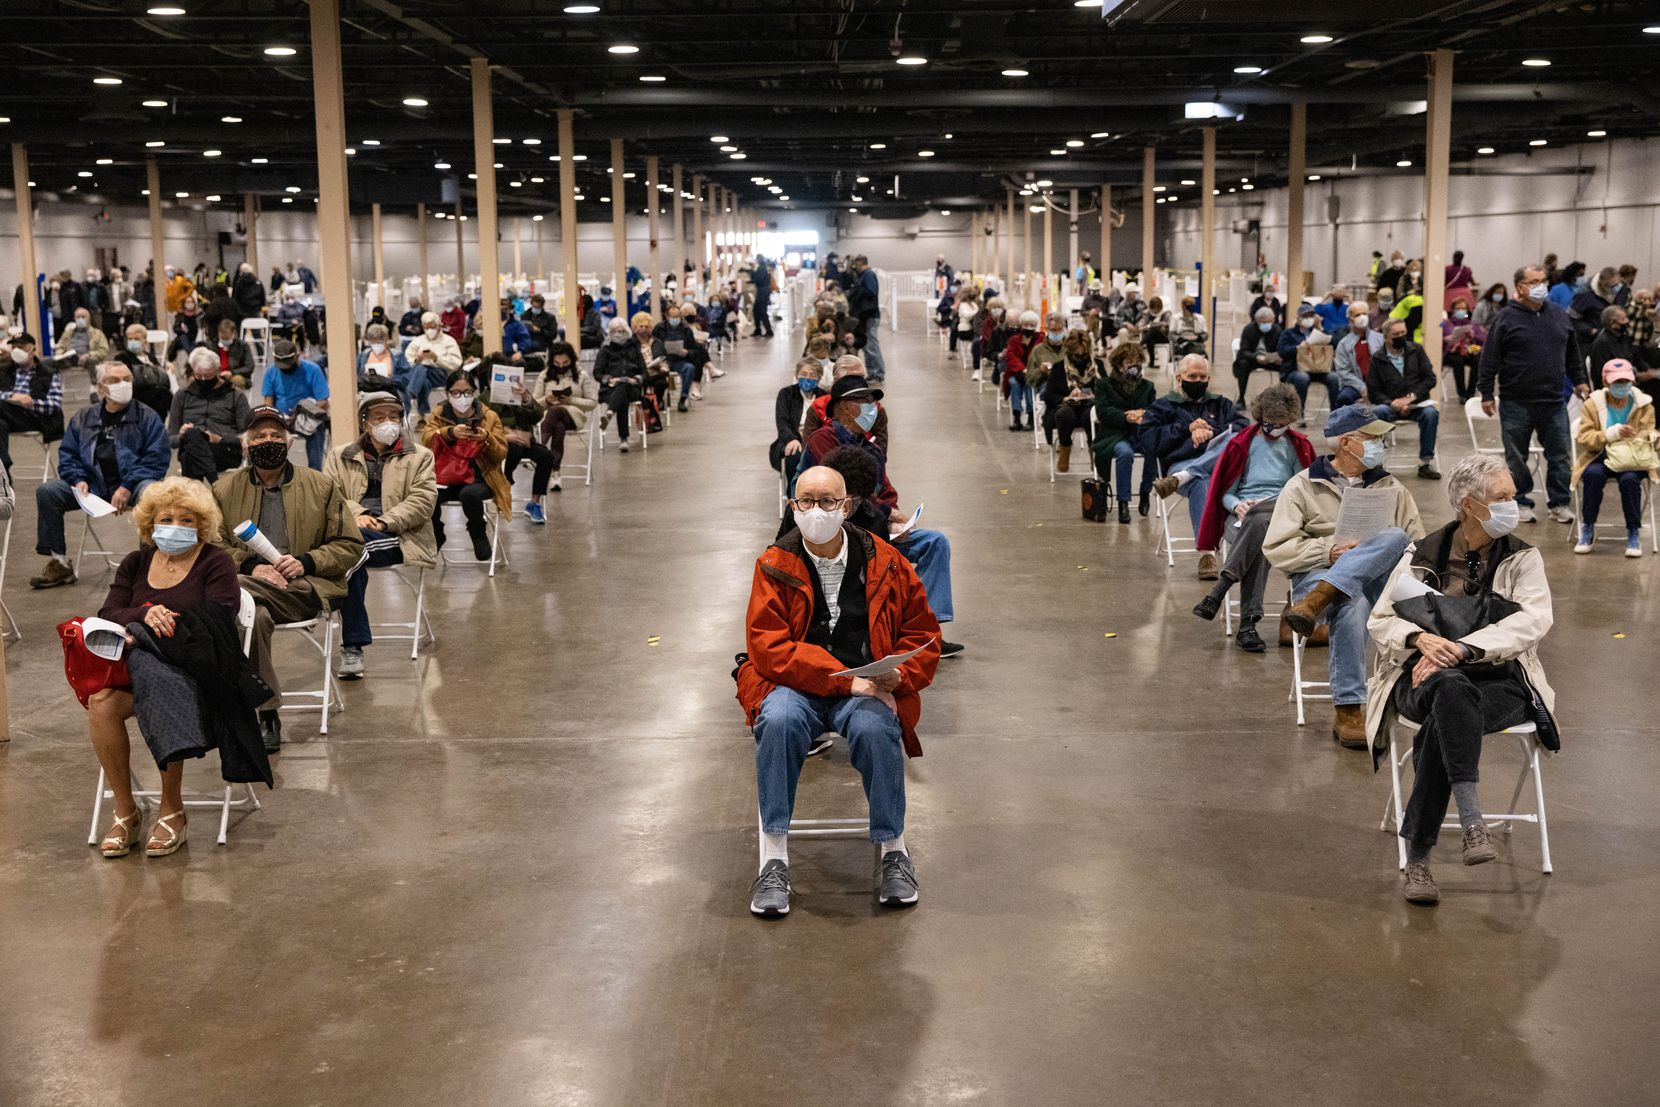 People wait to receive the COVID-19 vaccine at Fair Park in Dallas on Thursday, Jan. 14, 2021. A limited number of COVID-19 vaccine shots will be available Thursday at Fair Park for North Texans 75 and older.